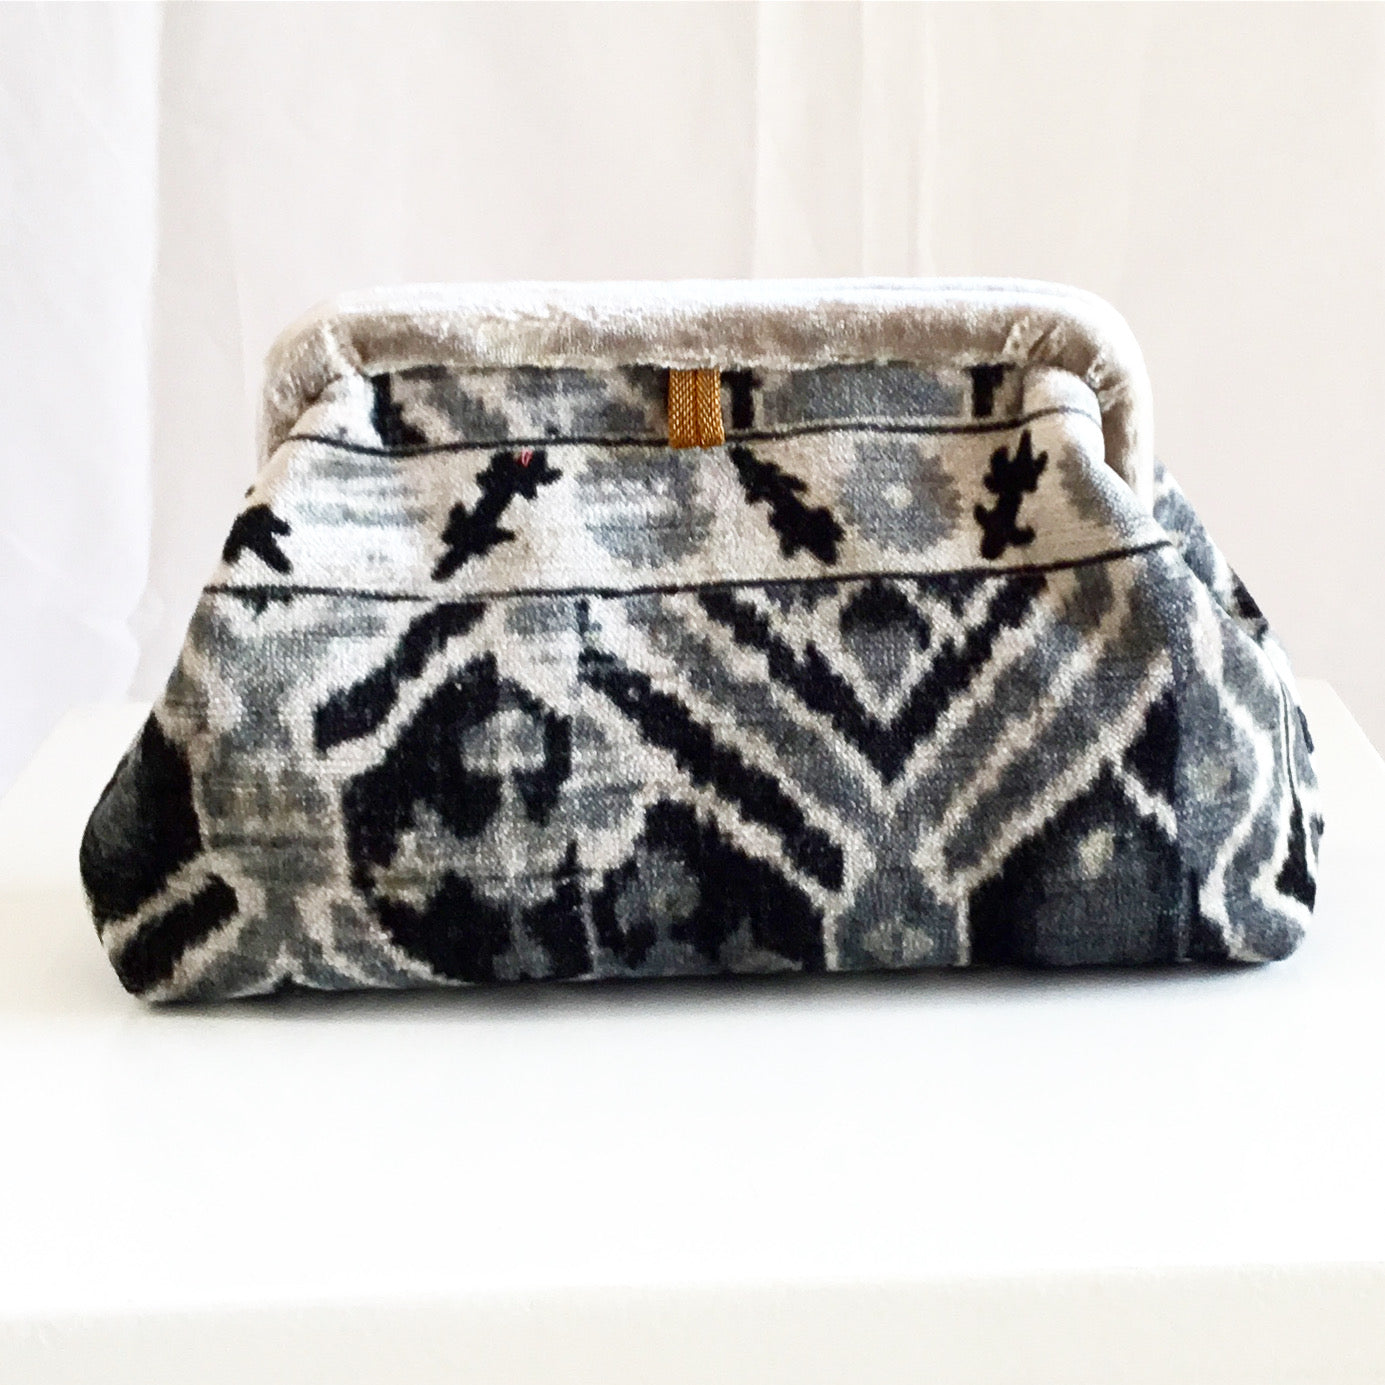 Marian Paquette Liette Ikat Patch Velvet Bag in Black and Grey